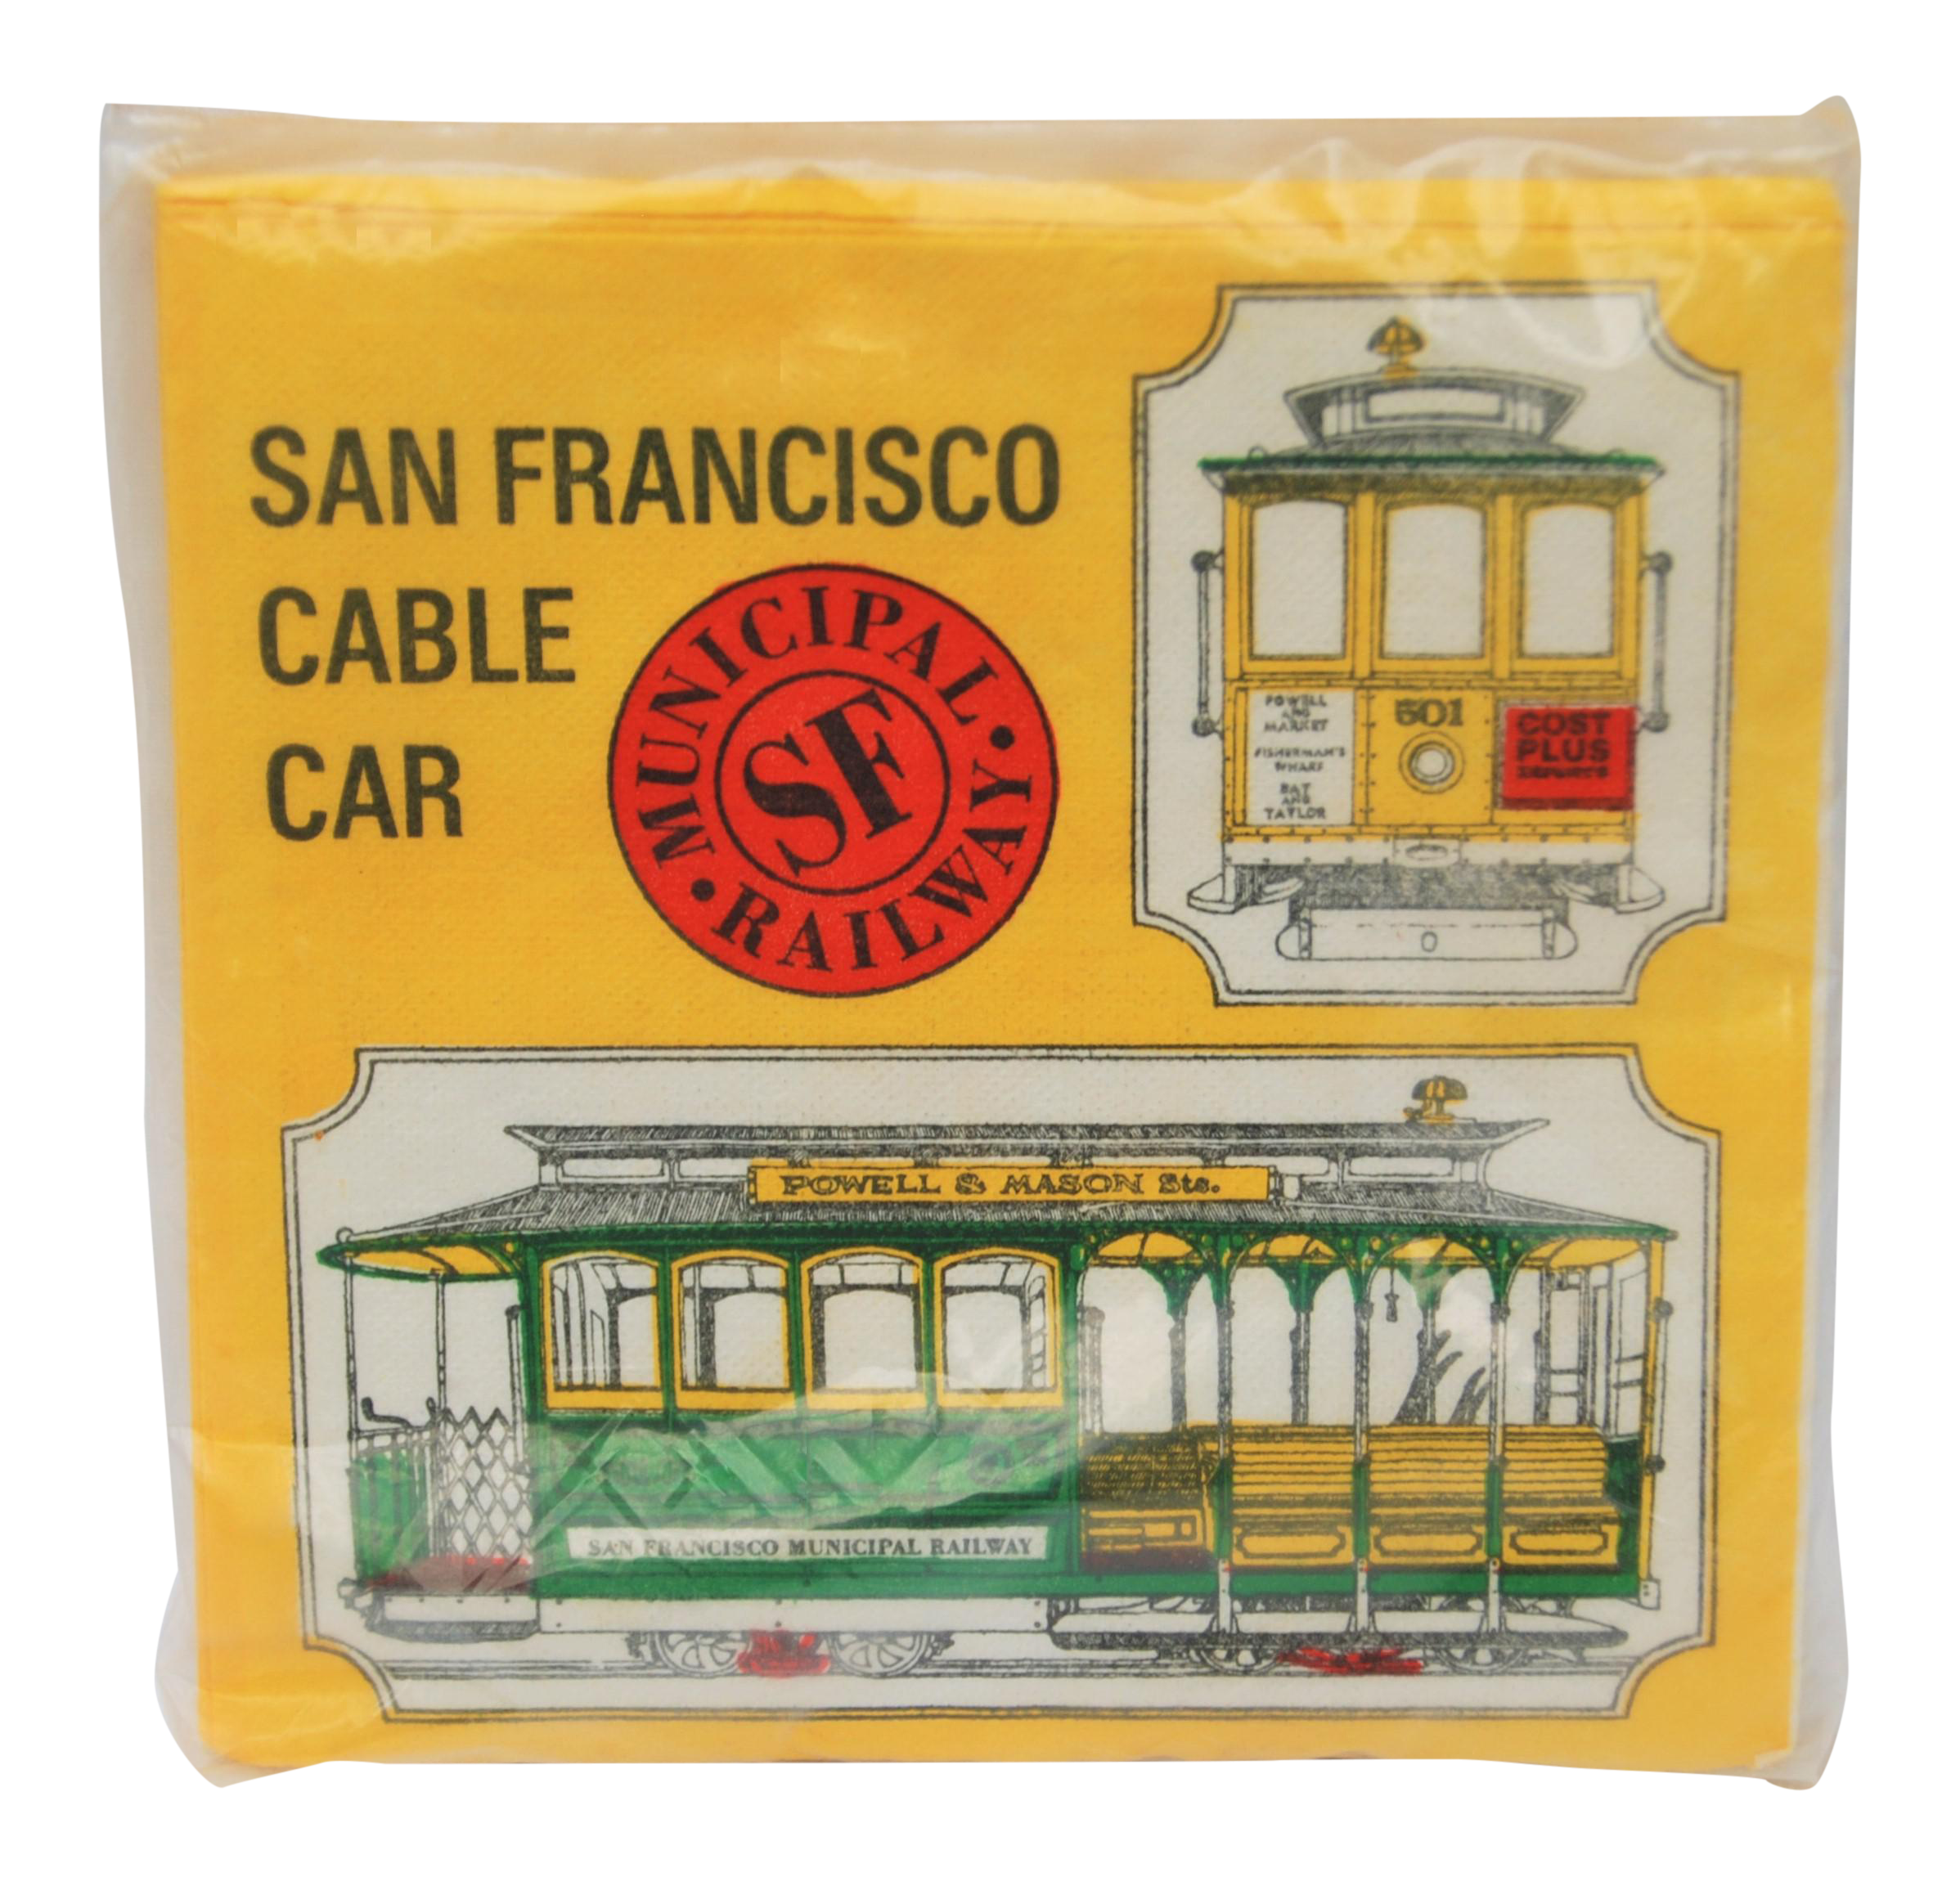 Attractive Vintage San Francisco Cable Car Paper Napkins   Set Of 24   Image 1 Of 6